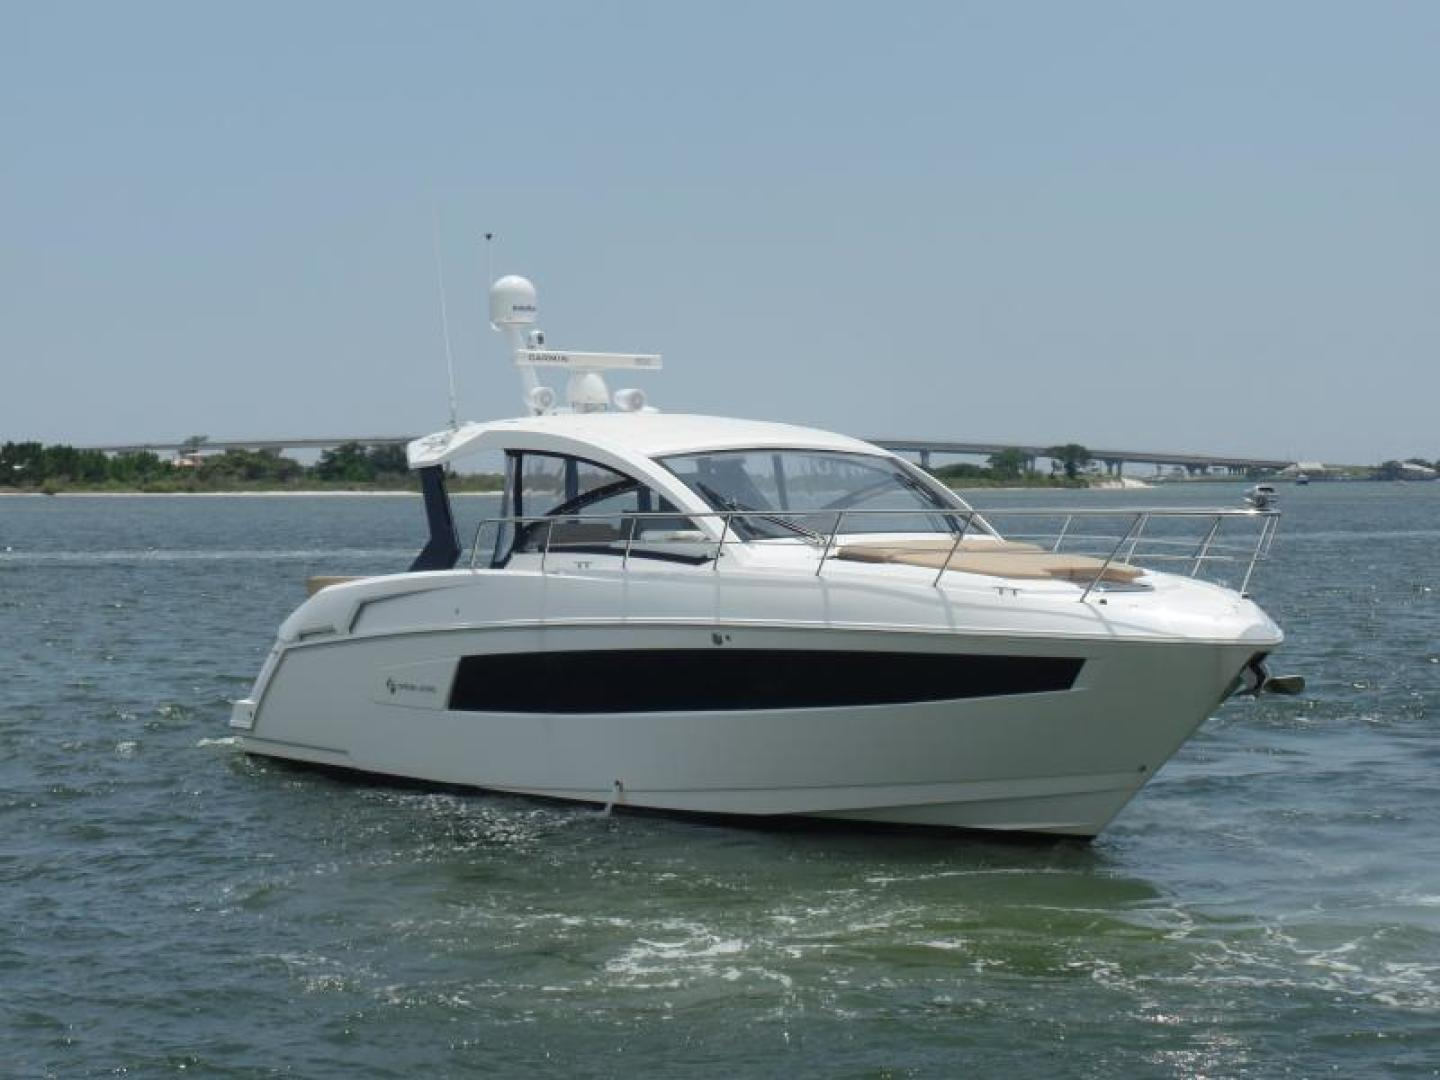 Cruisers-39 Express Coupe 2015-Tranquila Palm Beach-Florida-United States-39 Cruisers Starboard bow-1408620 | Thumbnail